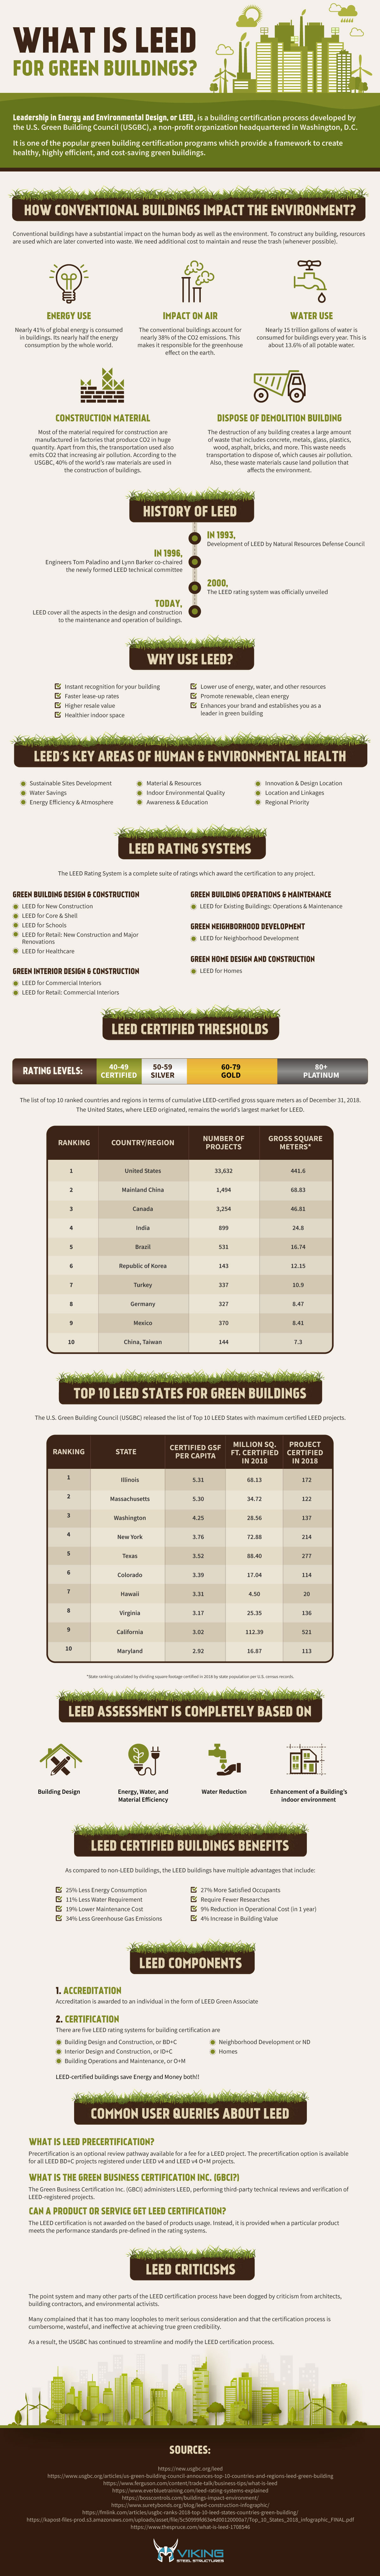 What is LEED for Green Building